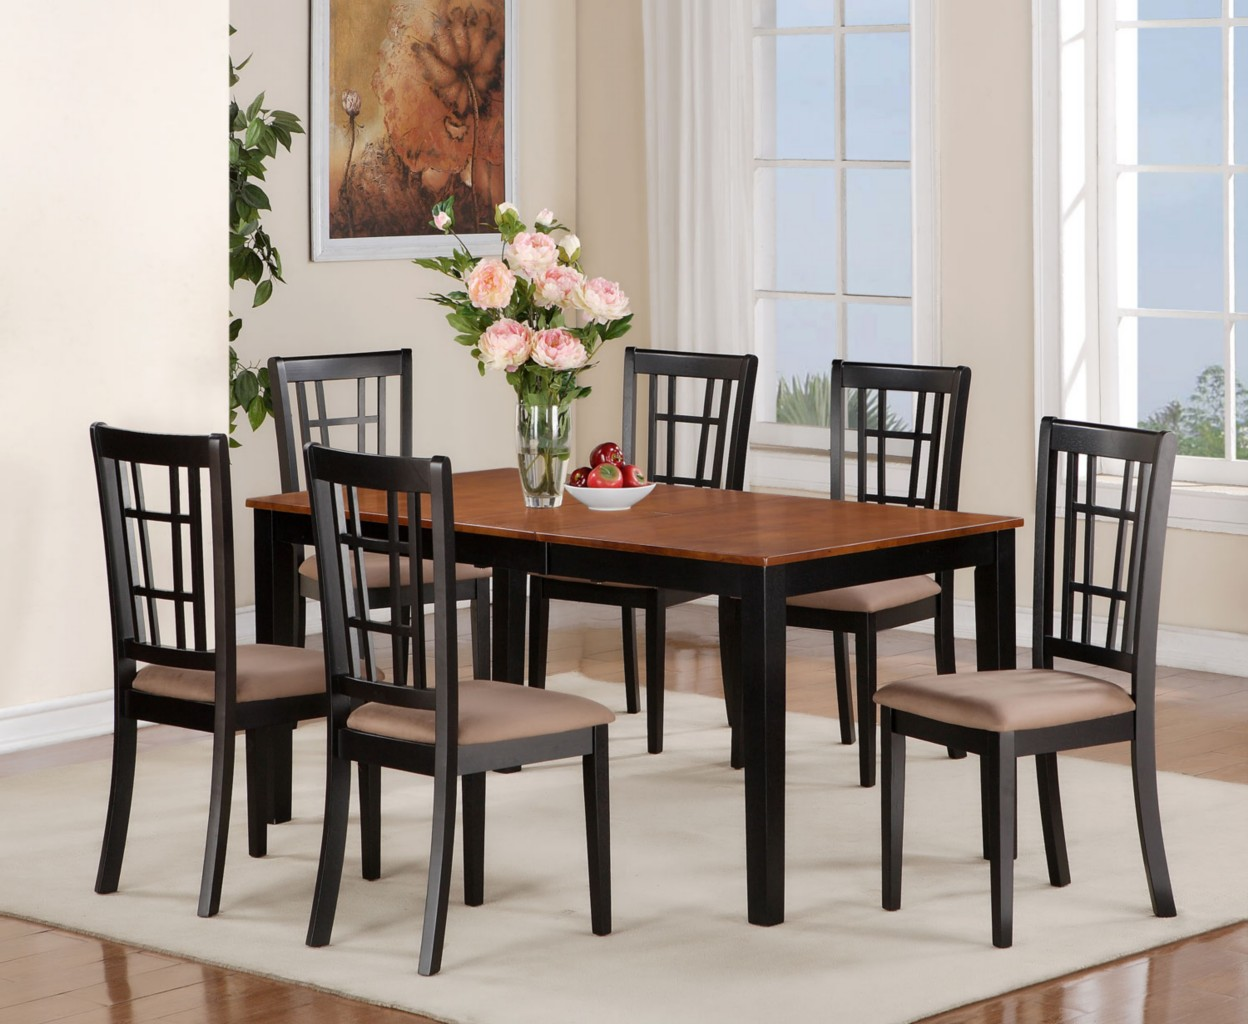 5PC DINETTE KITCHEN DINING SET RECTANGULAR TABLE amp 4  : 481368341o from www.ebay.com size 1248 x 1024 jpeg 207kB